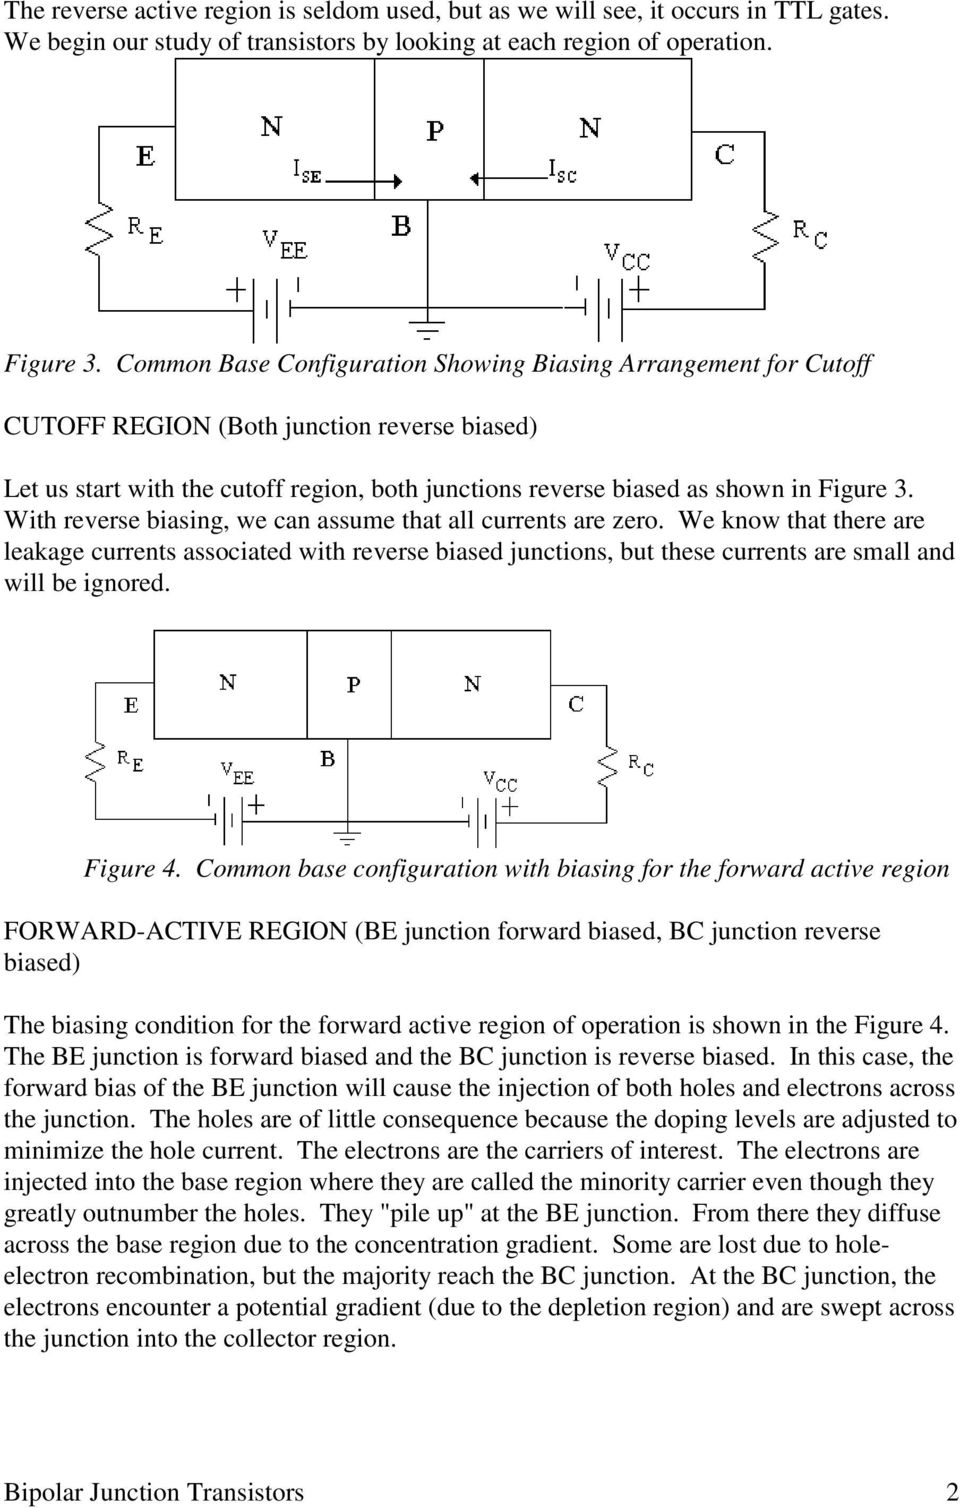 Bipolar Junction Transistors Pdf Transistor Circuits Example Of Designing Suppose 2 With Reverse Biasing We Can Assume That All Currents Are Zero Know